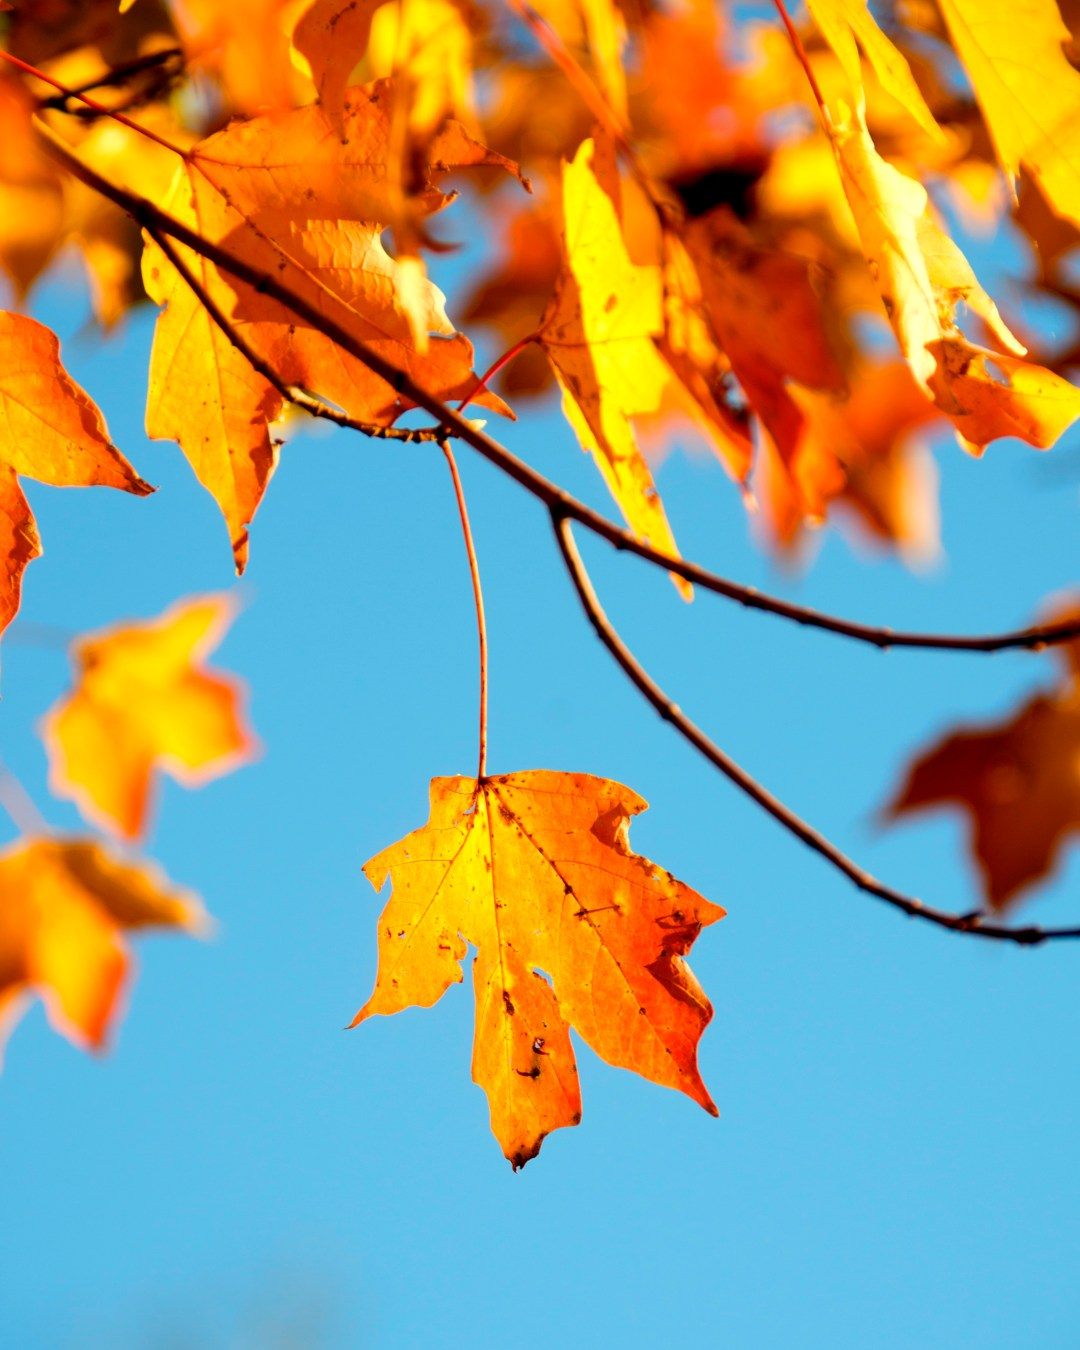 Fall Of The Leafe Wallpaper Autumn Images Download Free Images On Unsplash